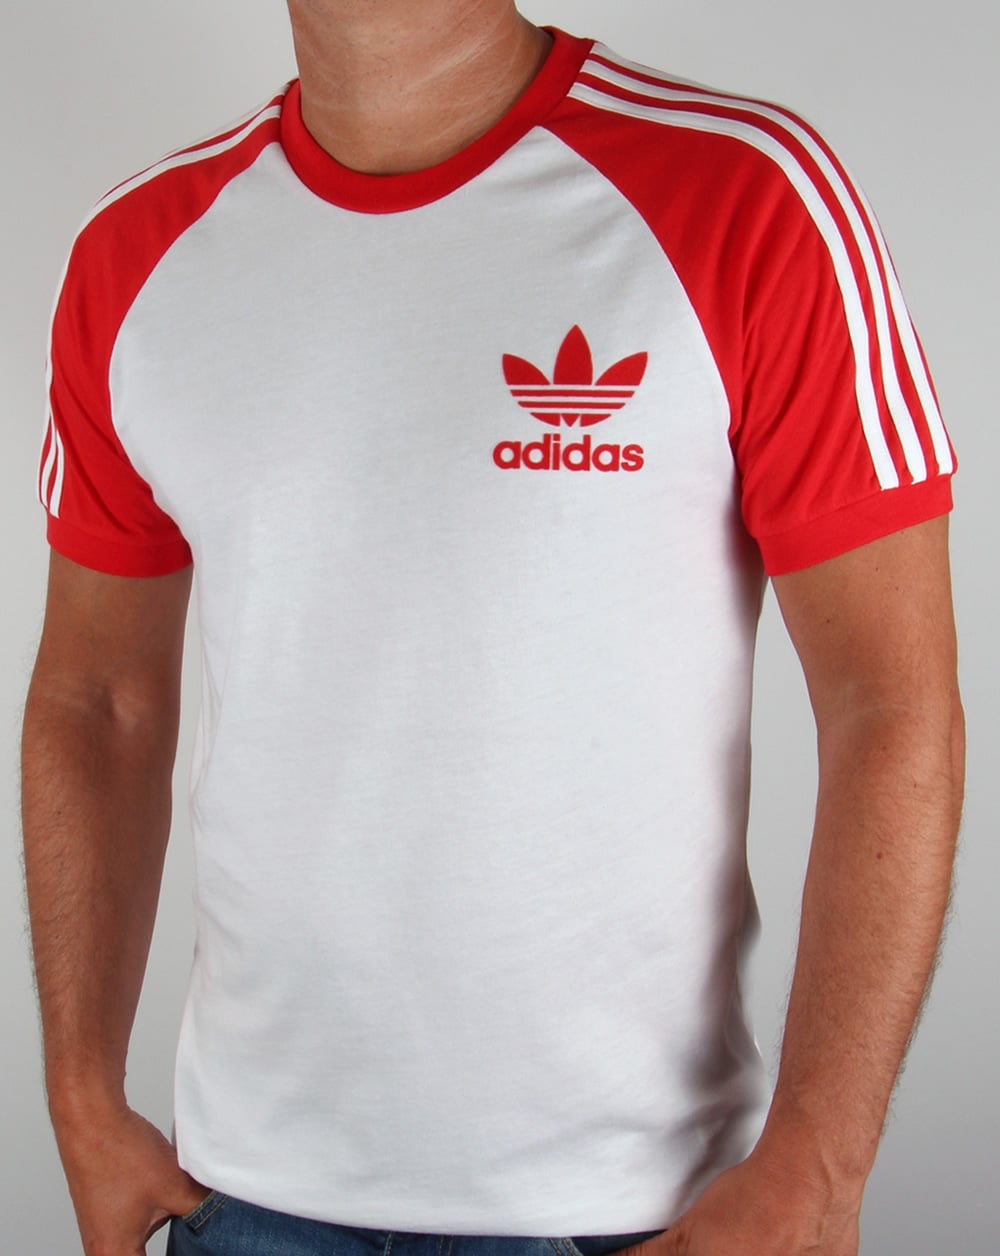 25ce07d7a4b adidas Originals Adidas Originals Retro 3 Stripe T-shirt White/Red